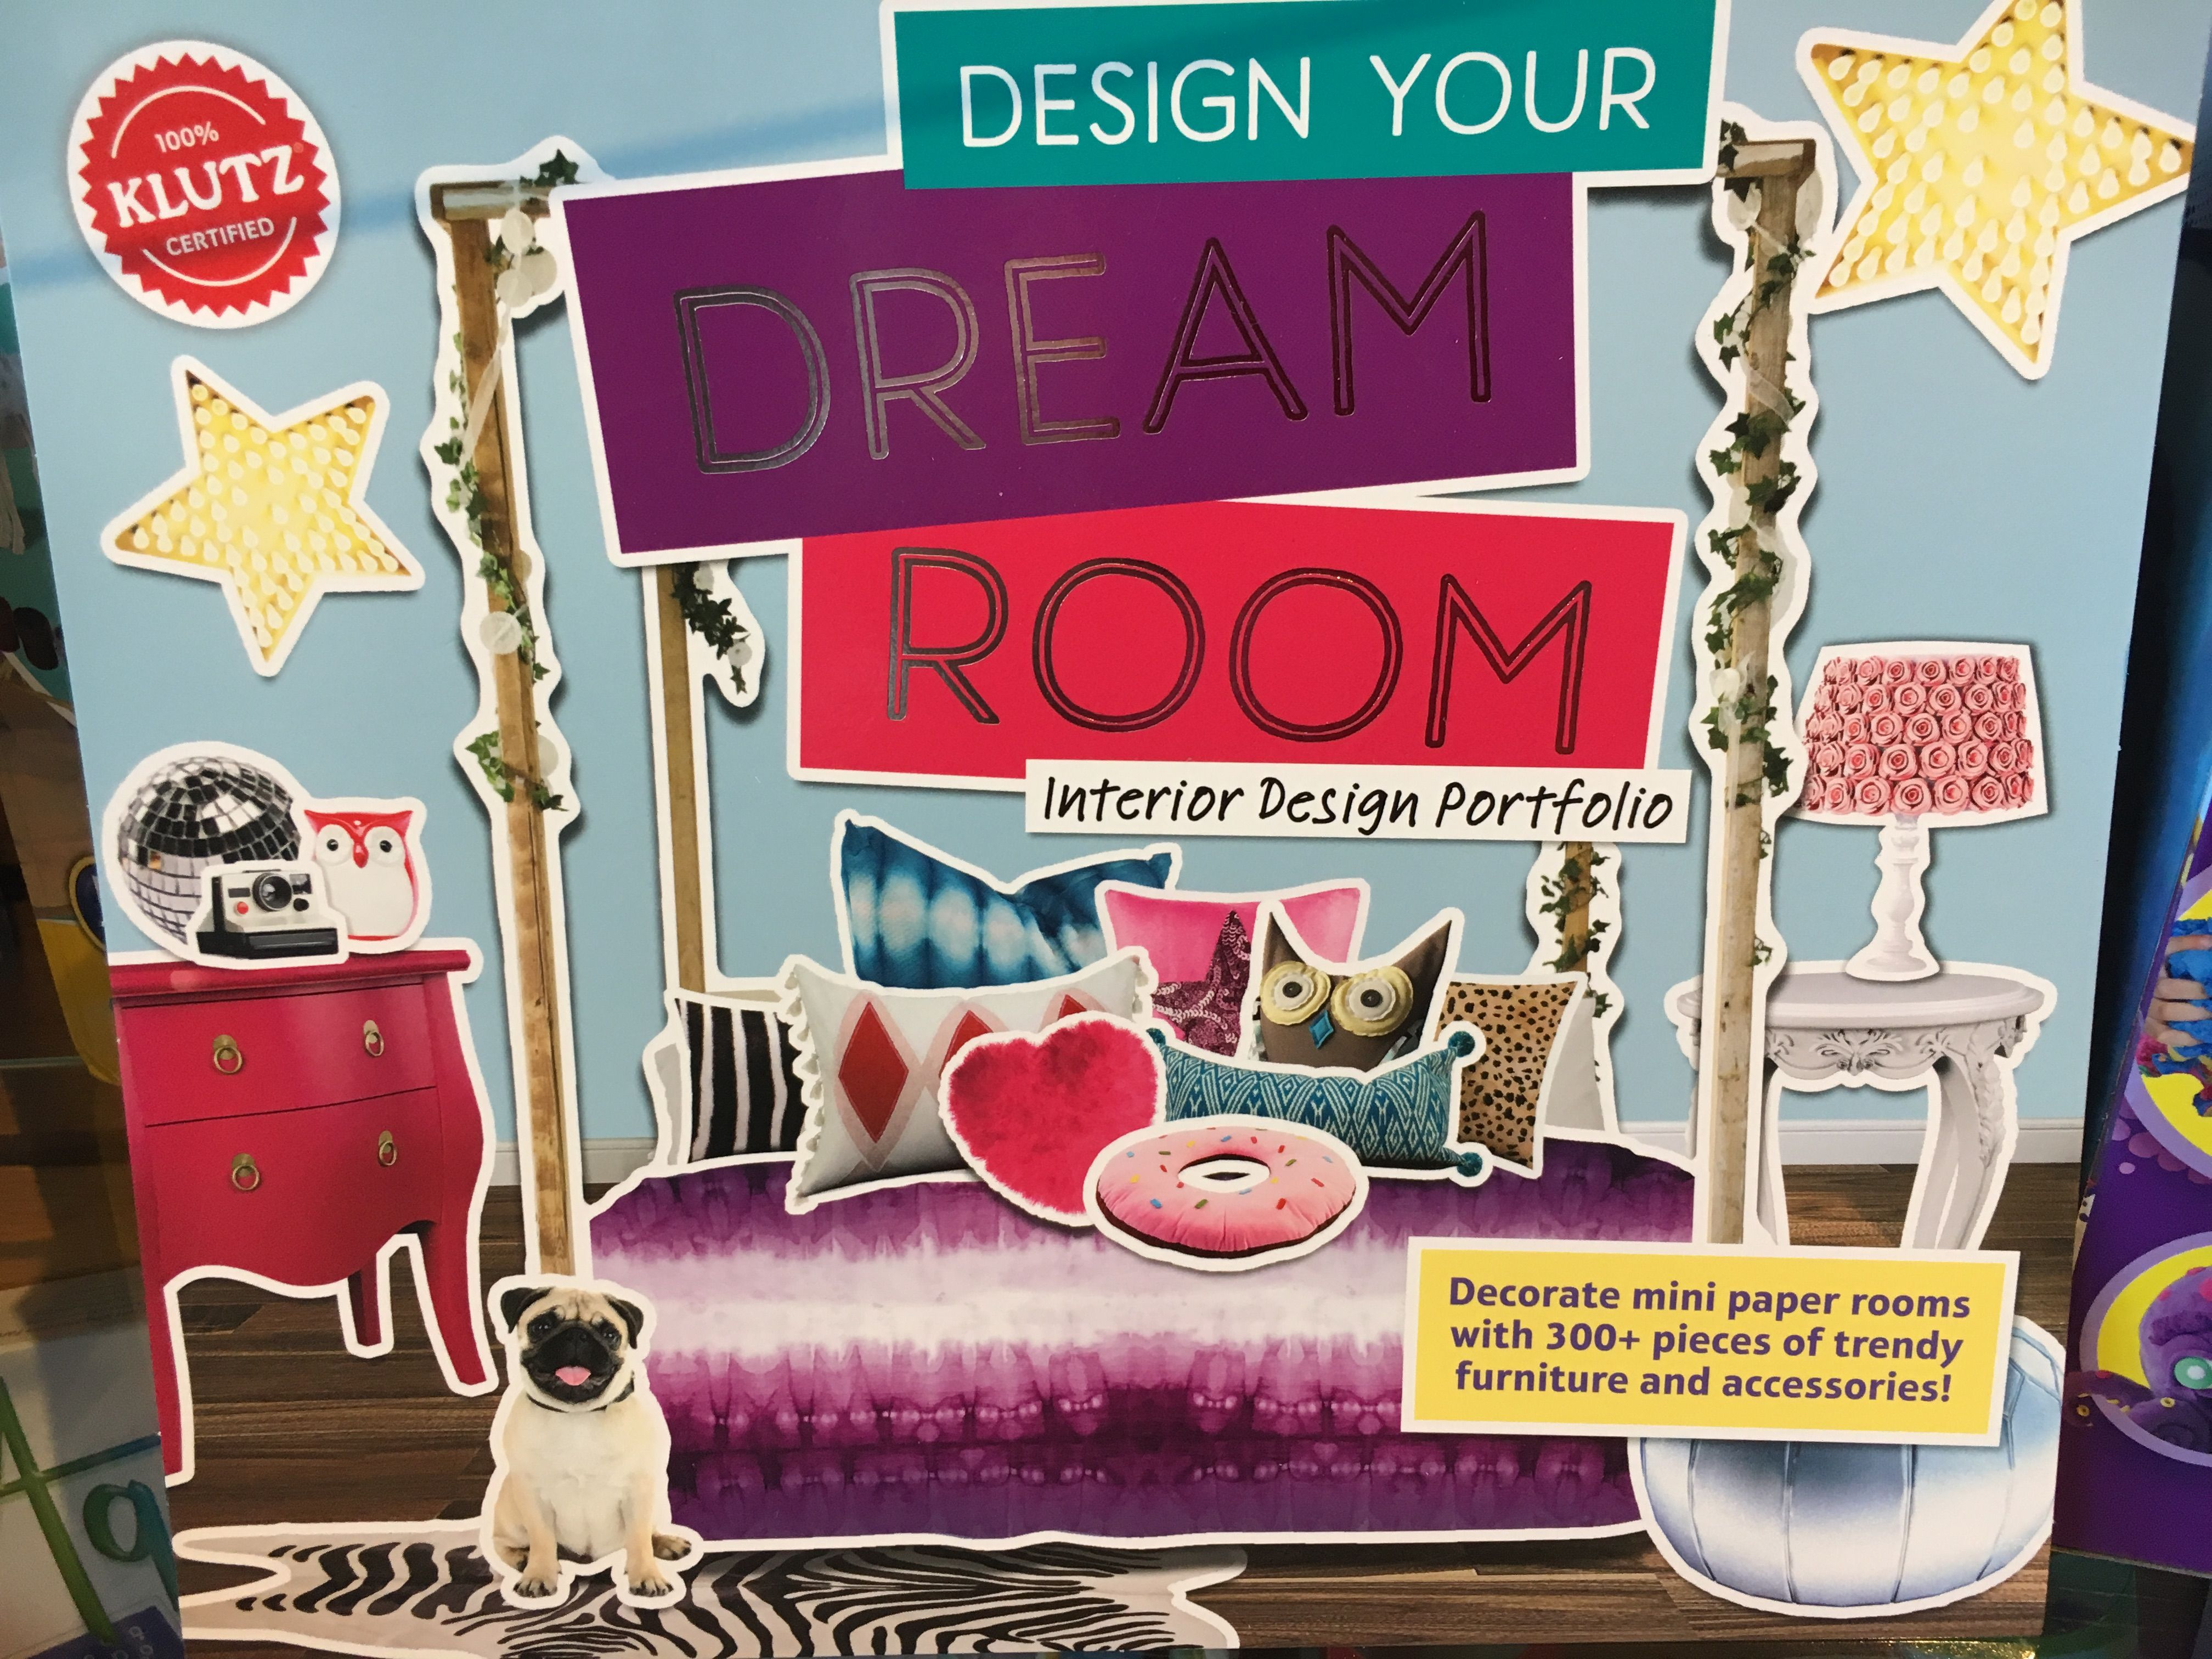 Design your own dream room Gifts Pinterest Dream rooms